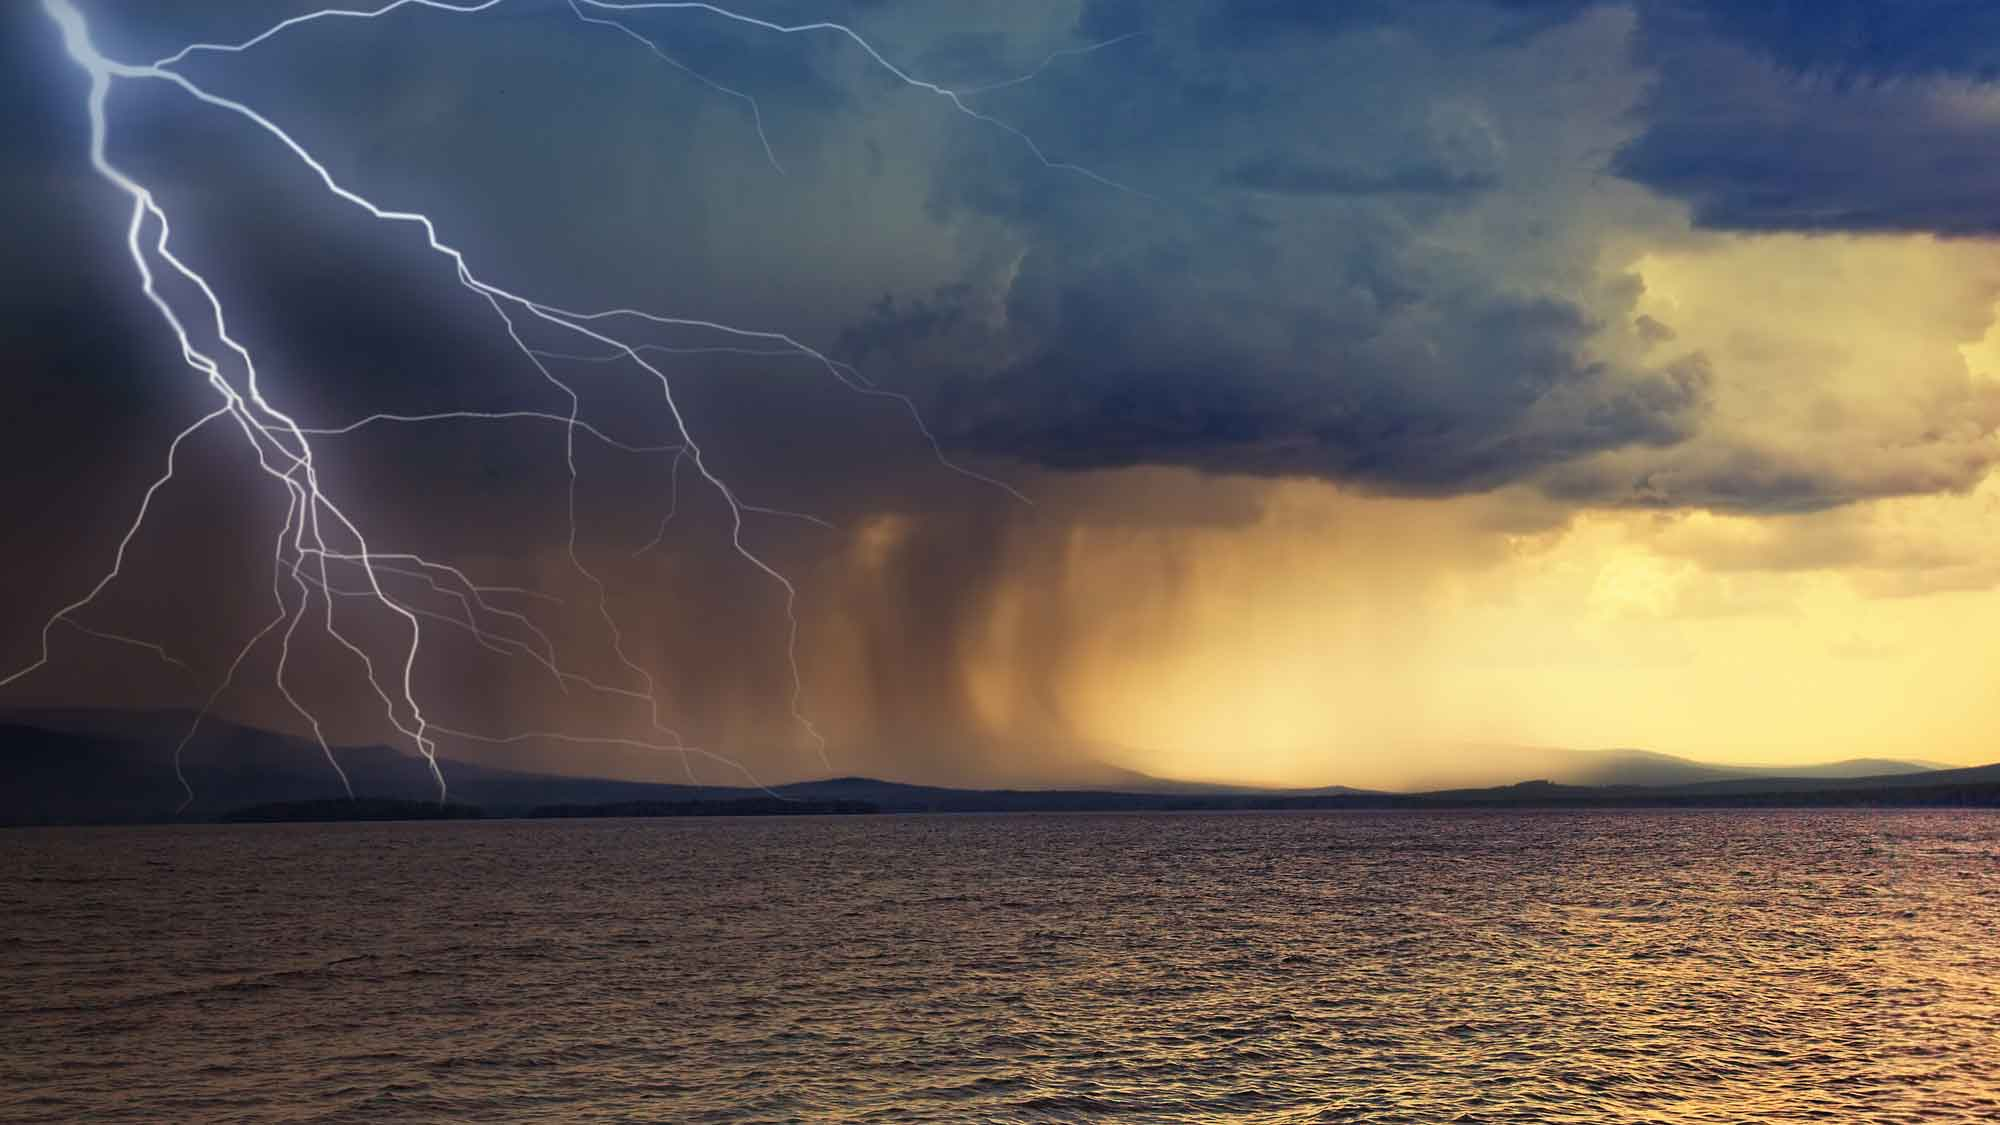 Storm over lake with lightning